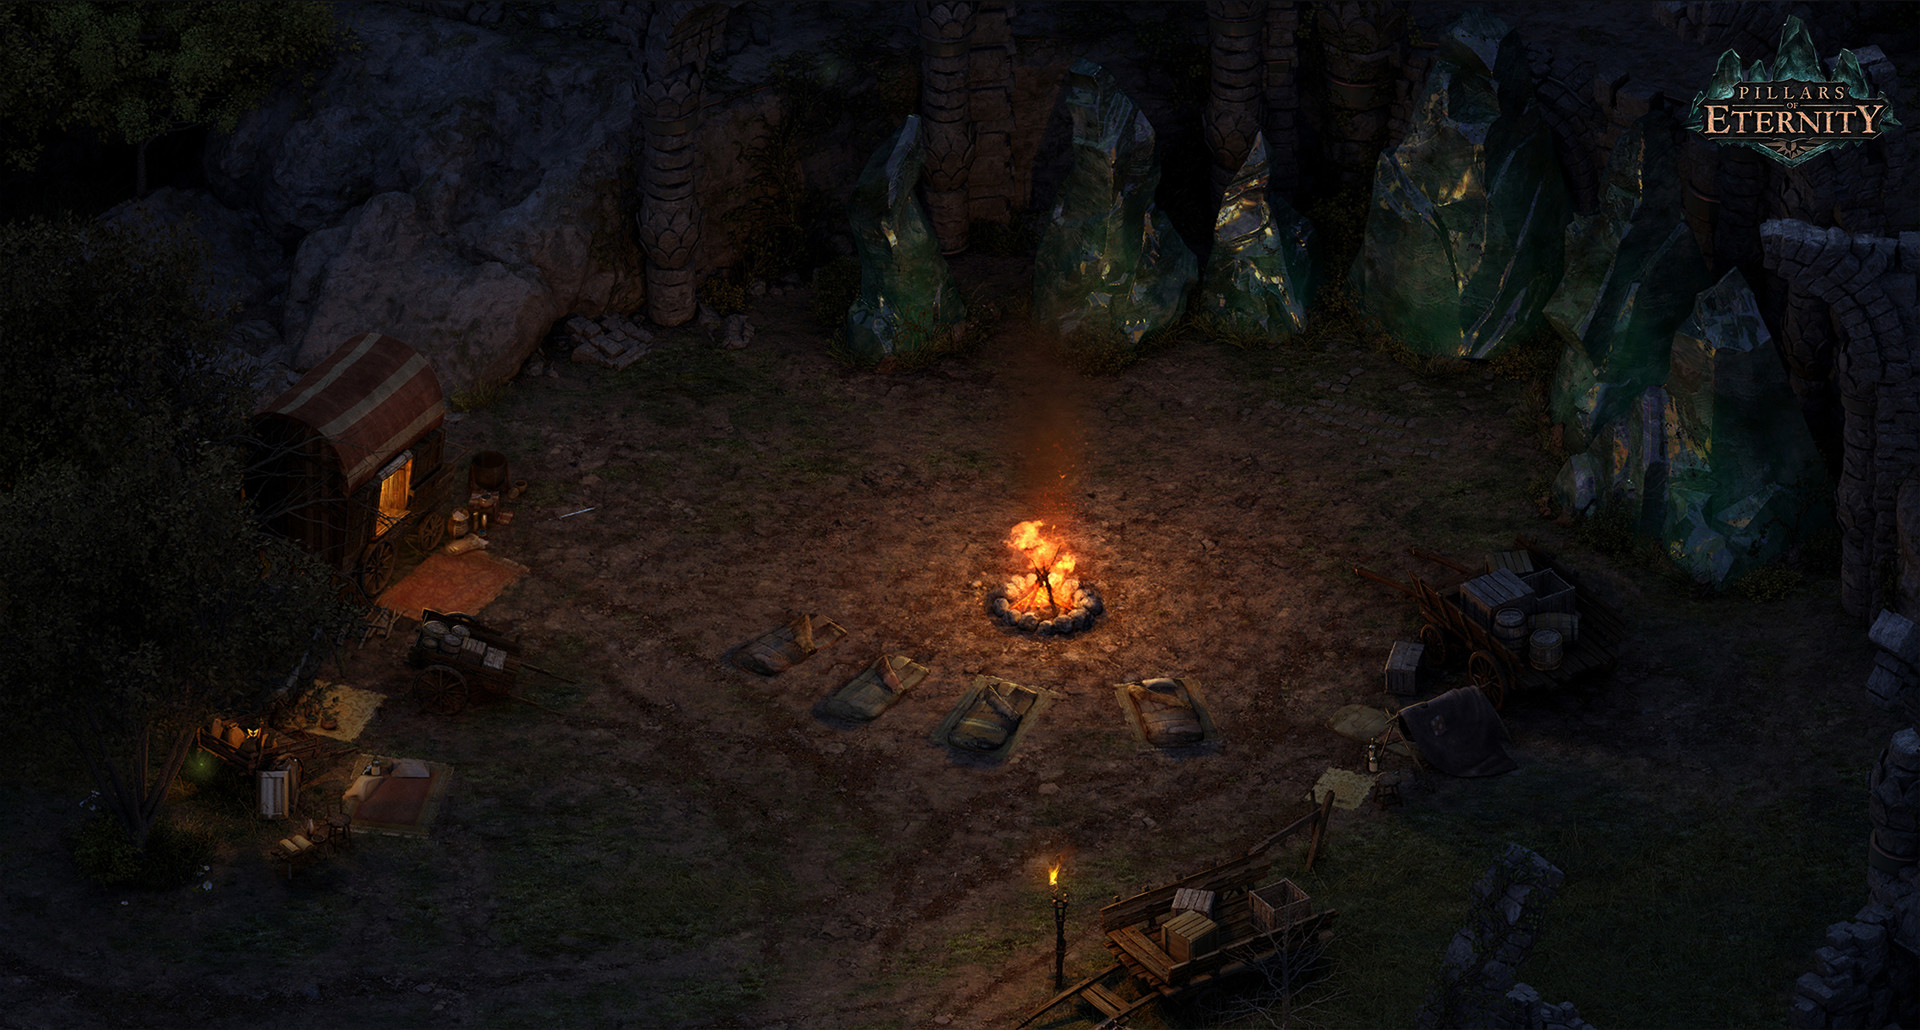 Pillars of Eternity PC Fiyatları